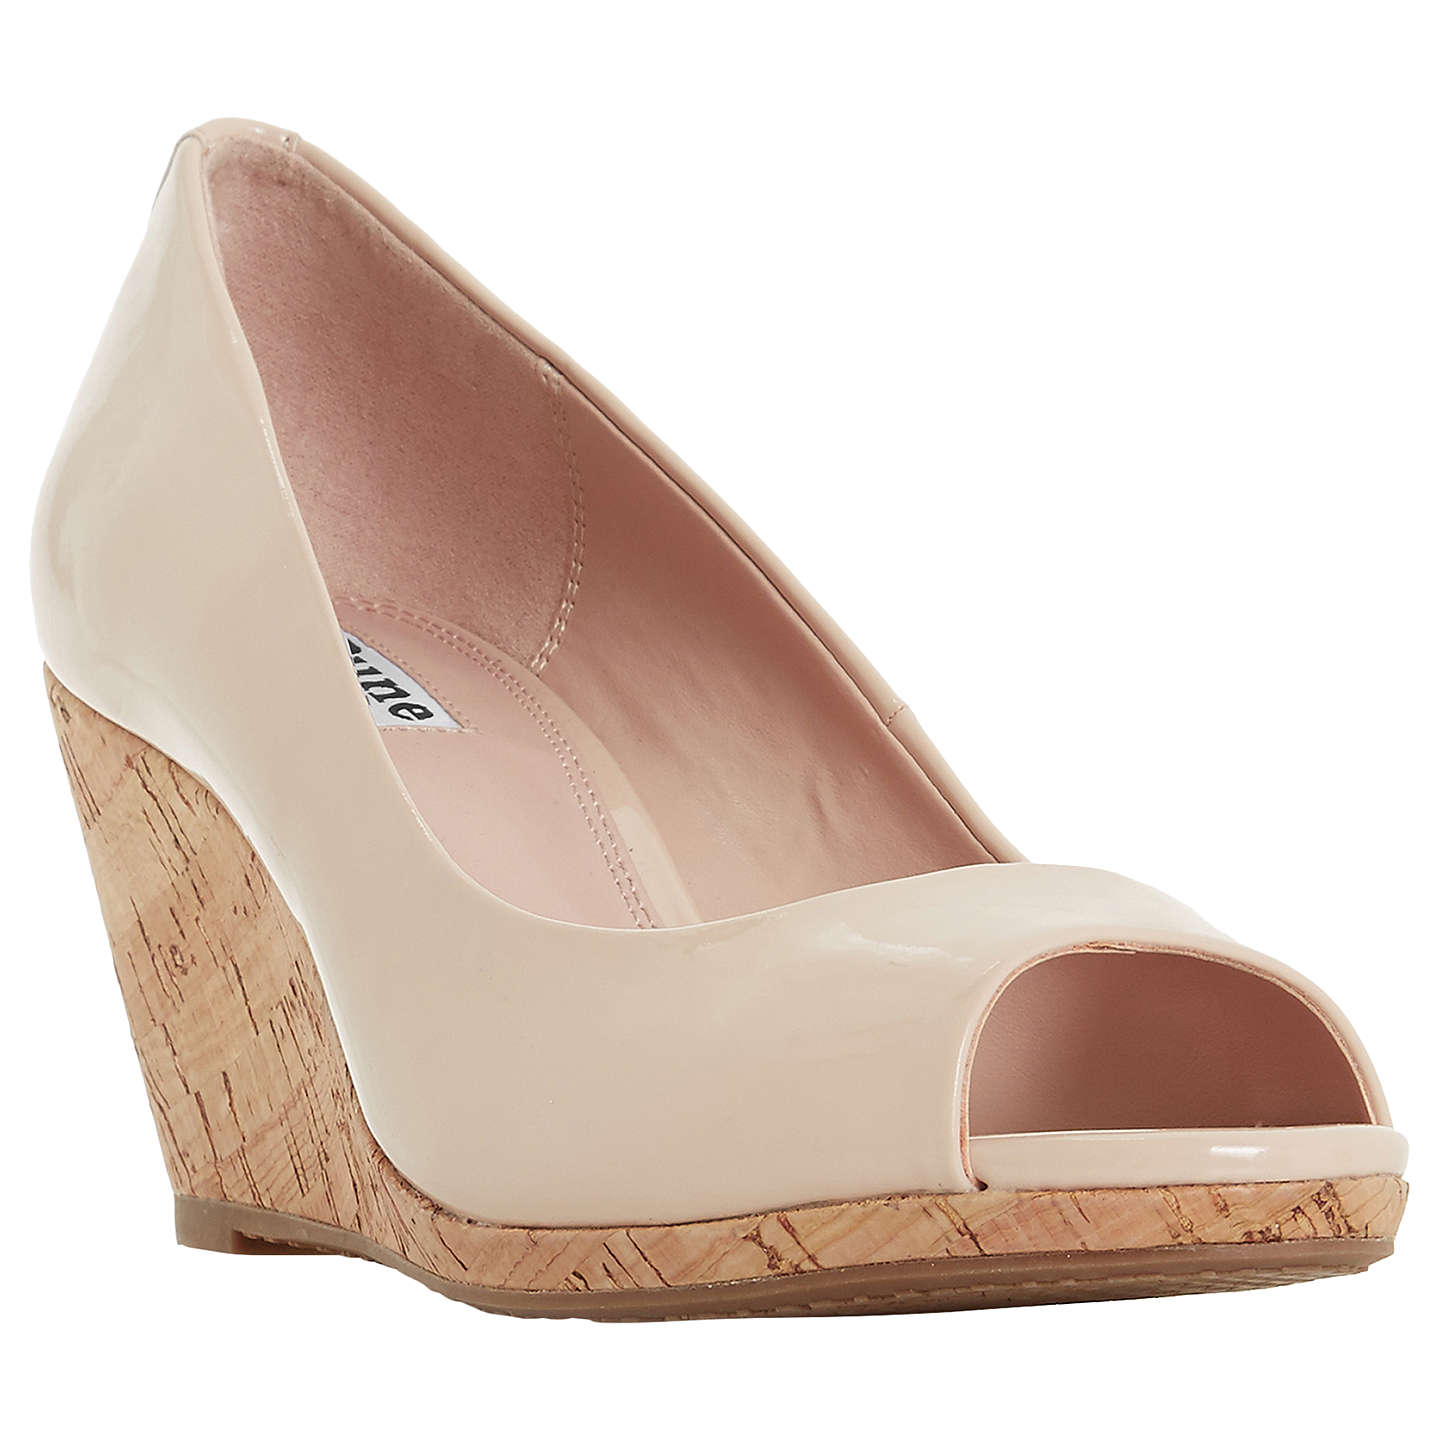 BuyDune Caydence Peep Toe Wedge Heel Sandals, Nude, 3 Online at johnlewis.com